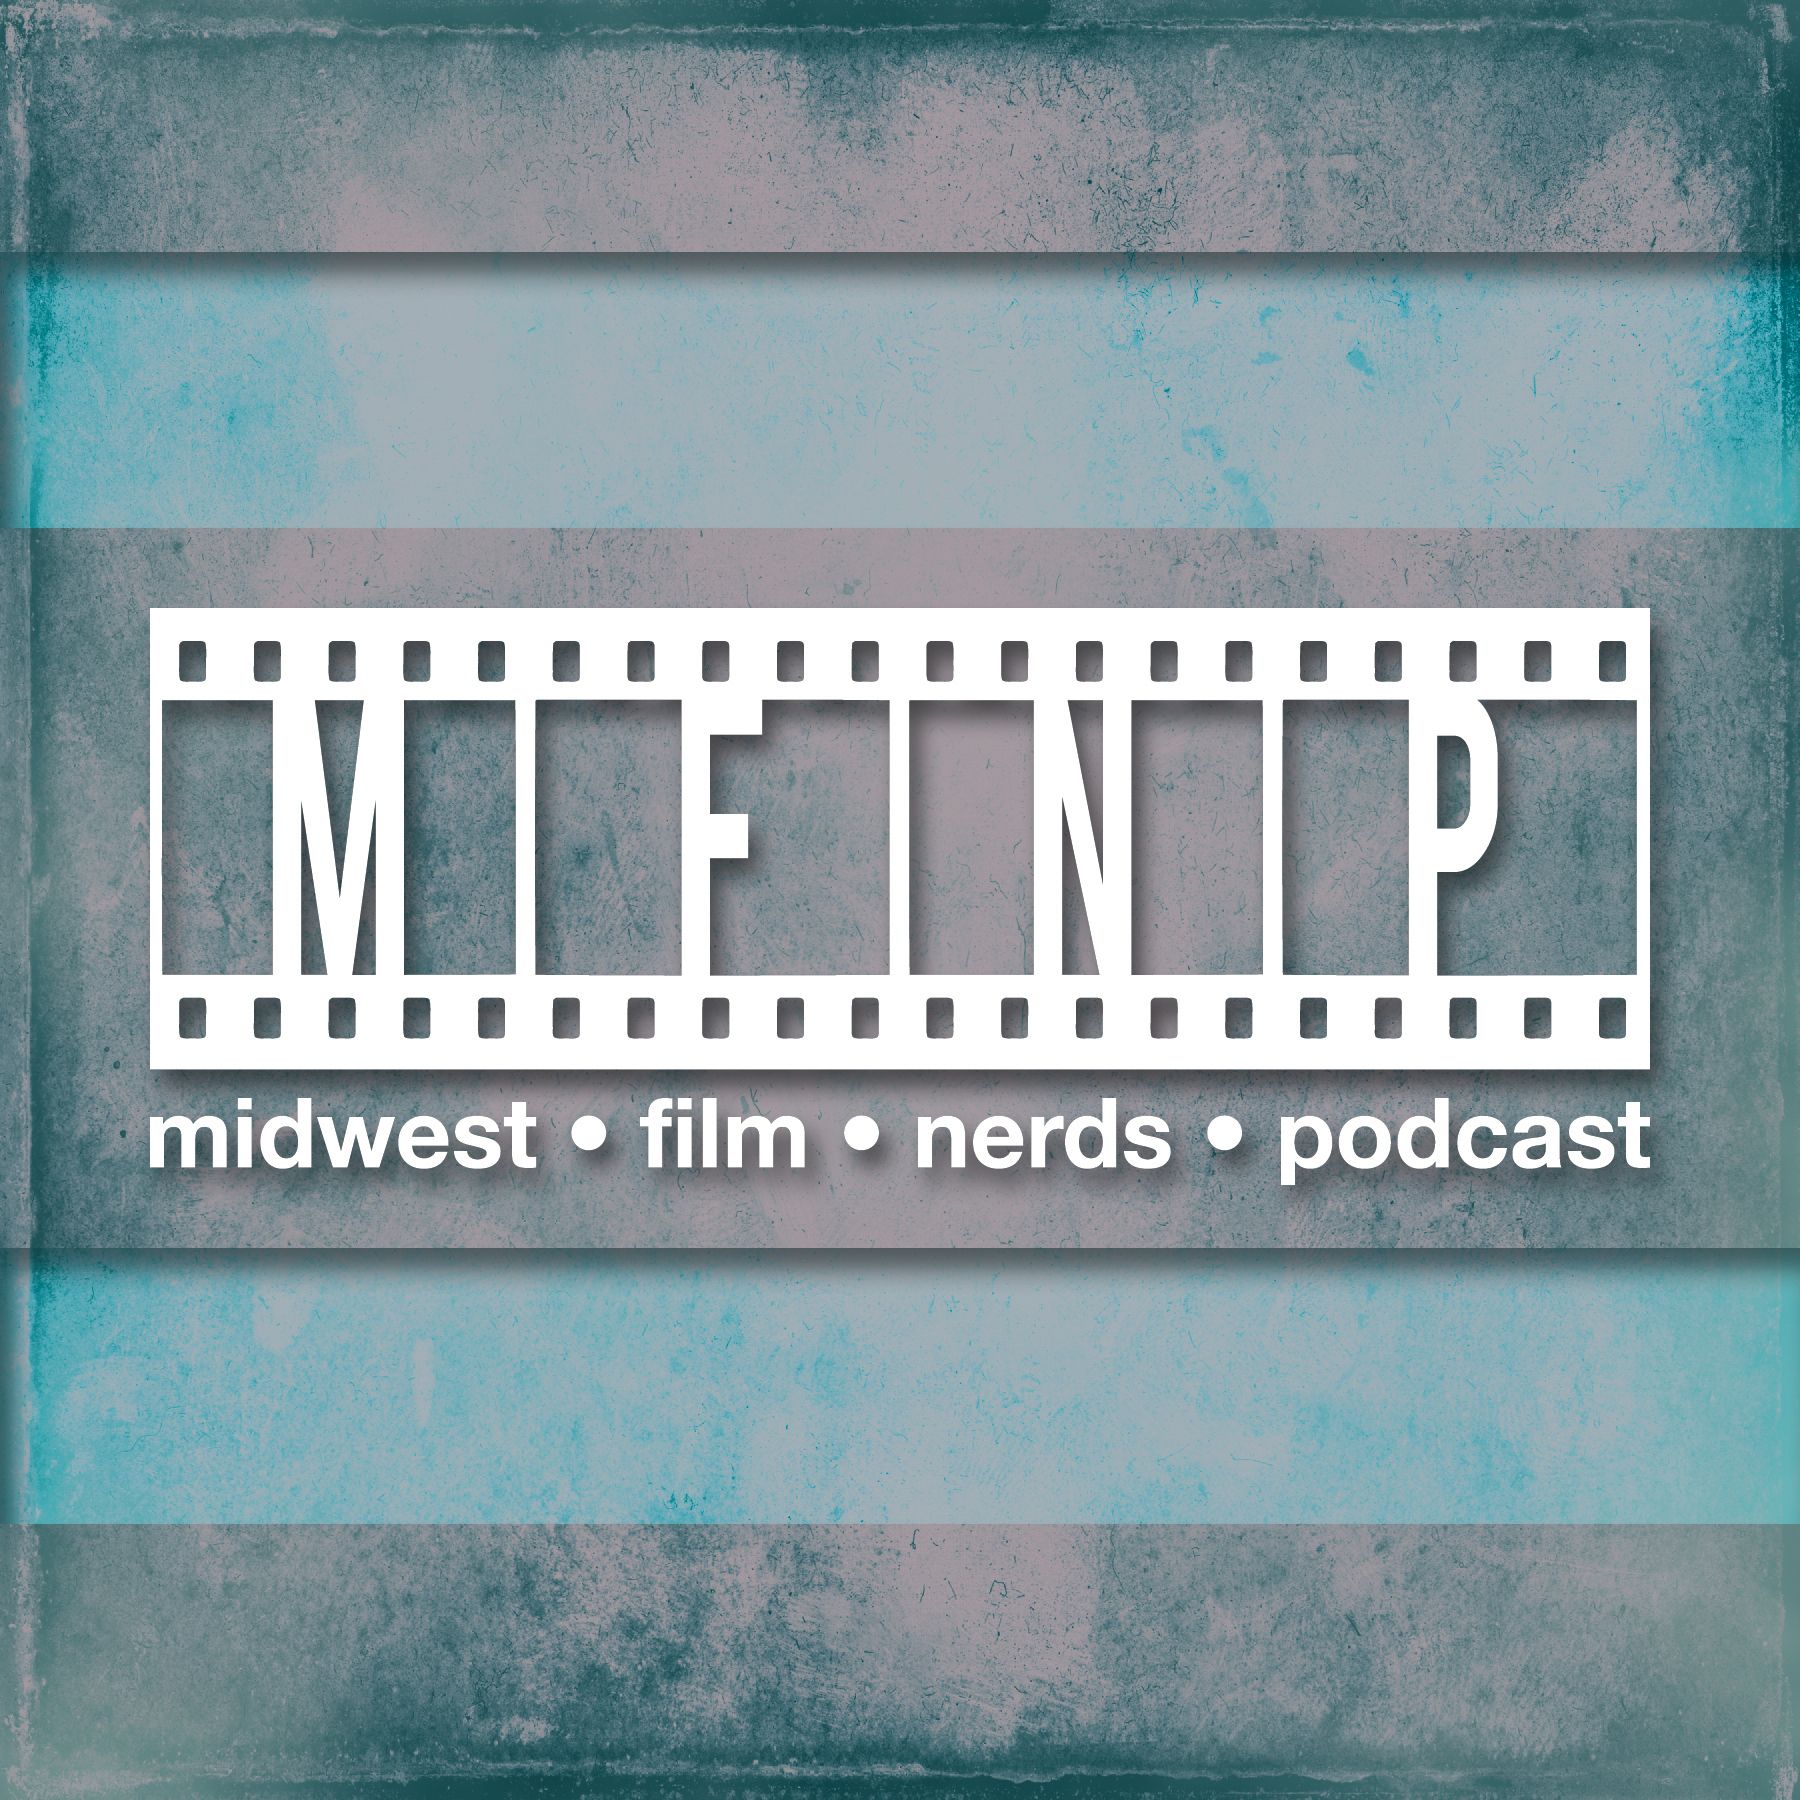 Midwest Film Nerds